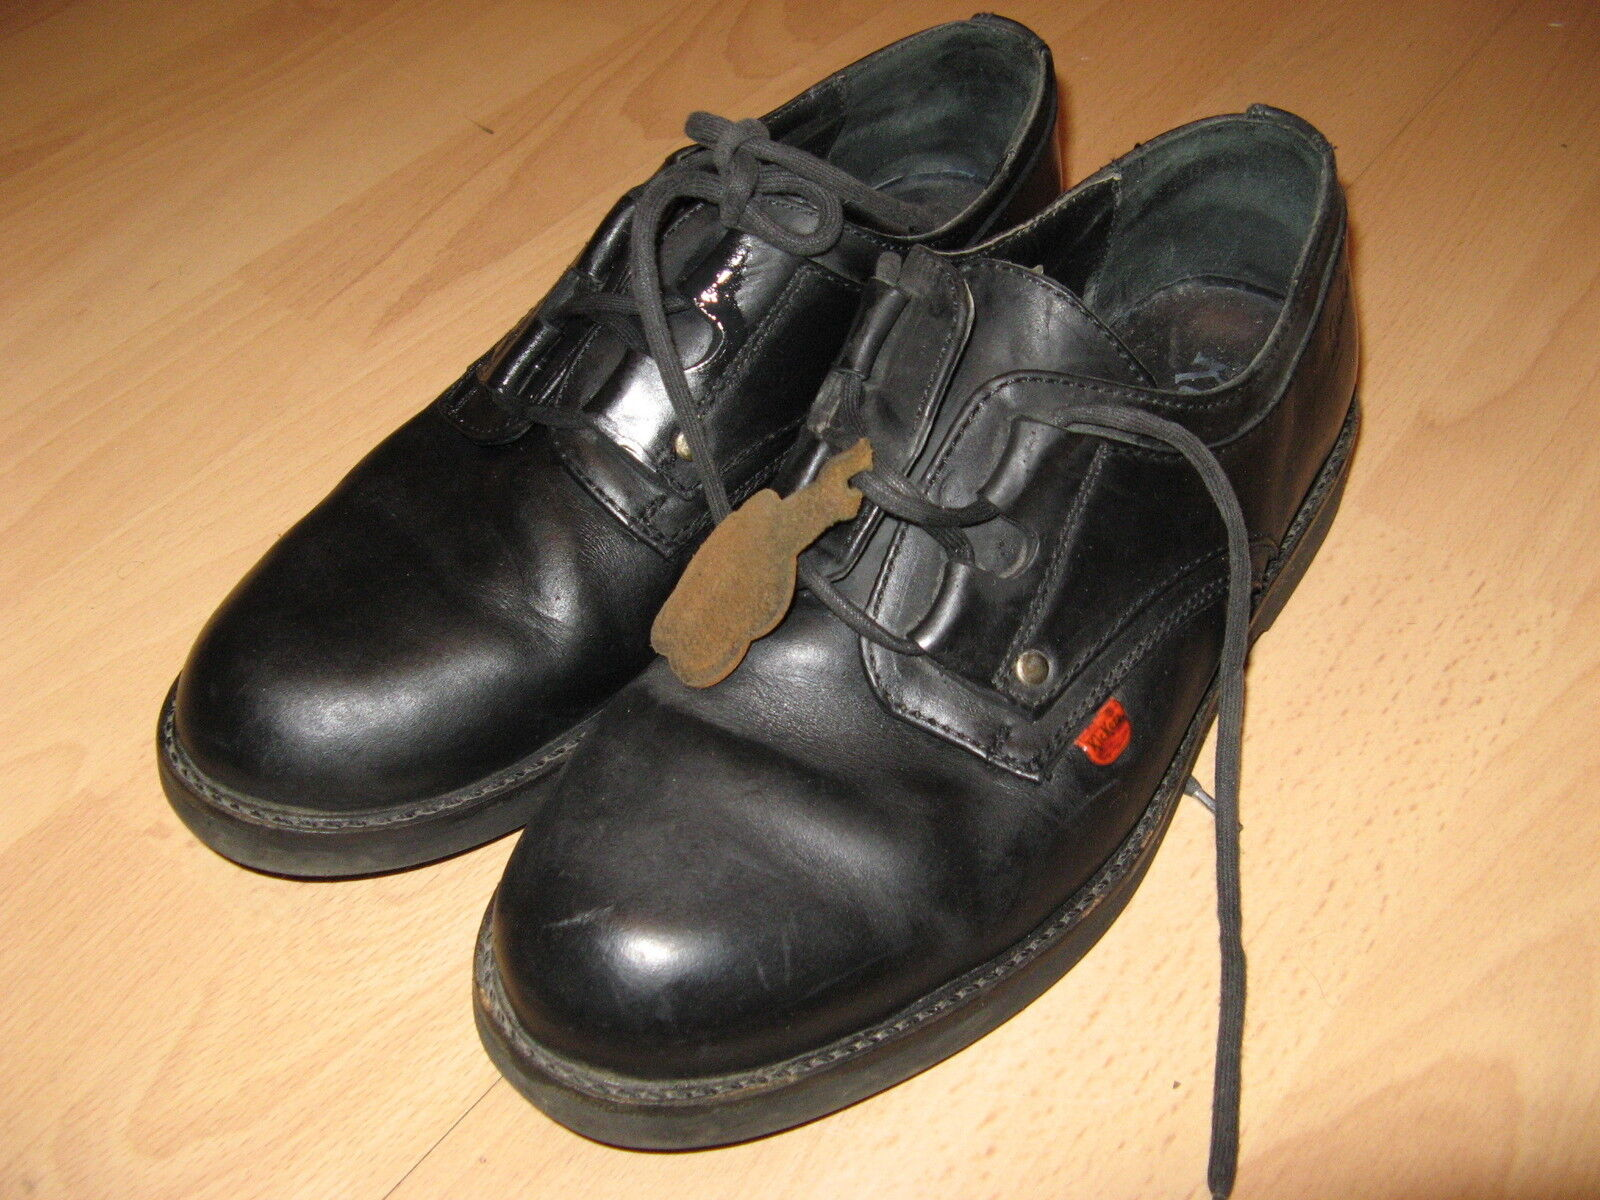 USED MENS BOYS BLACK LEATHER KICKERS LACE UP CASUAL SHOES SIZE 8 UK 42 EU 8.5 US